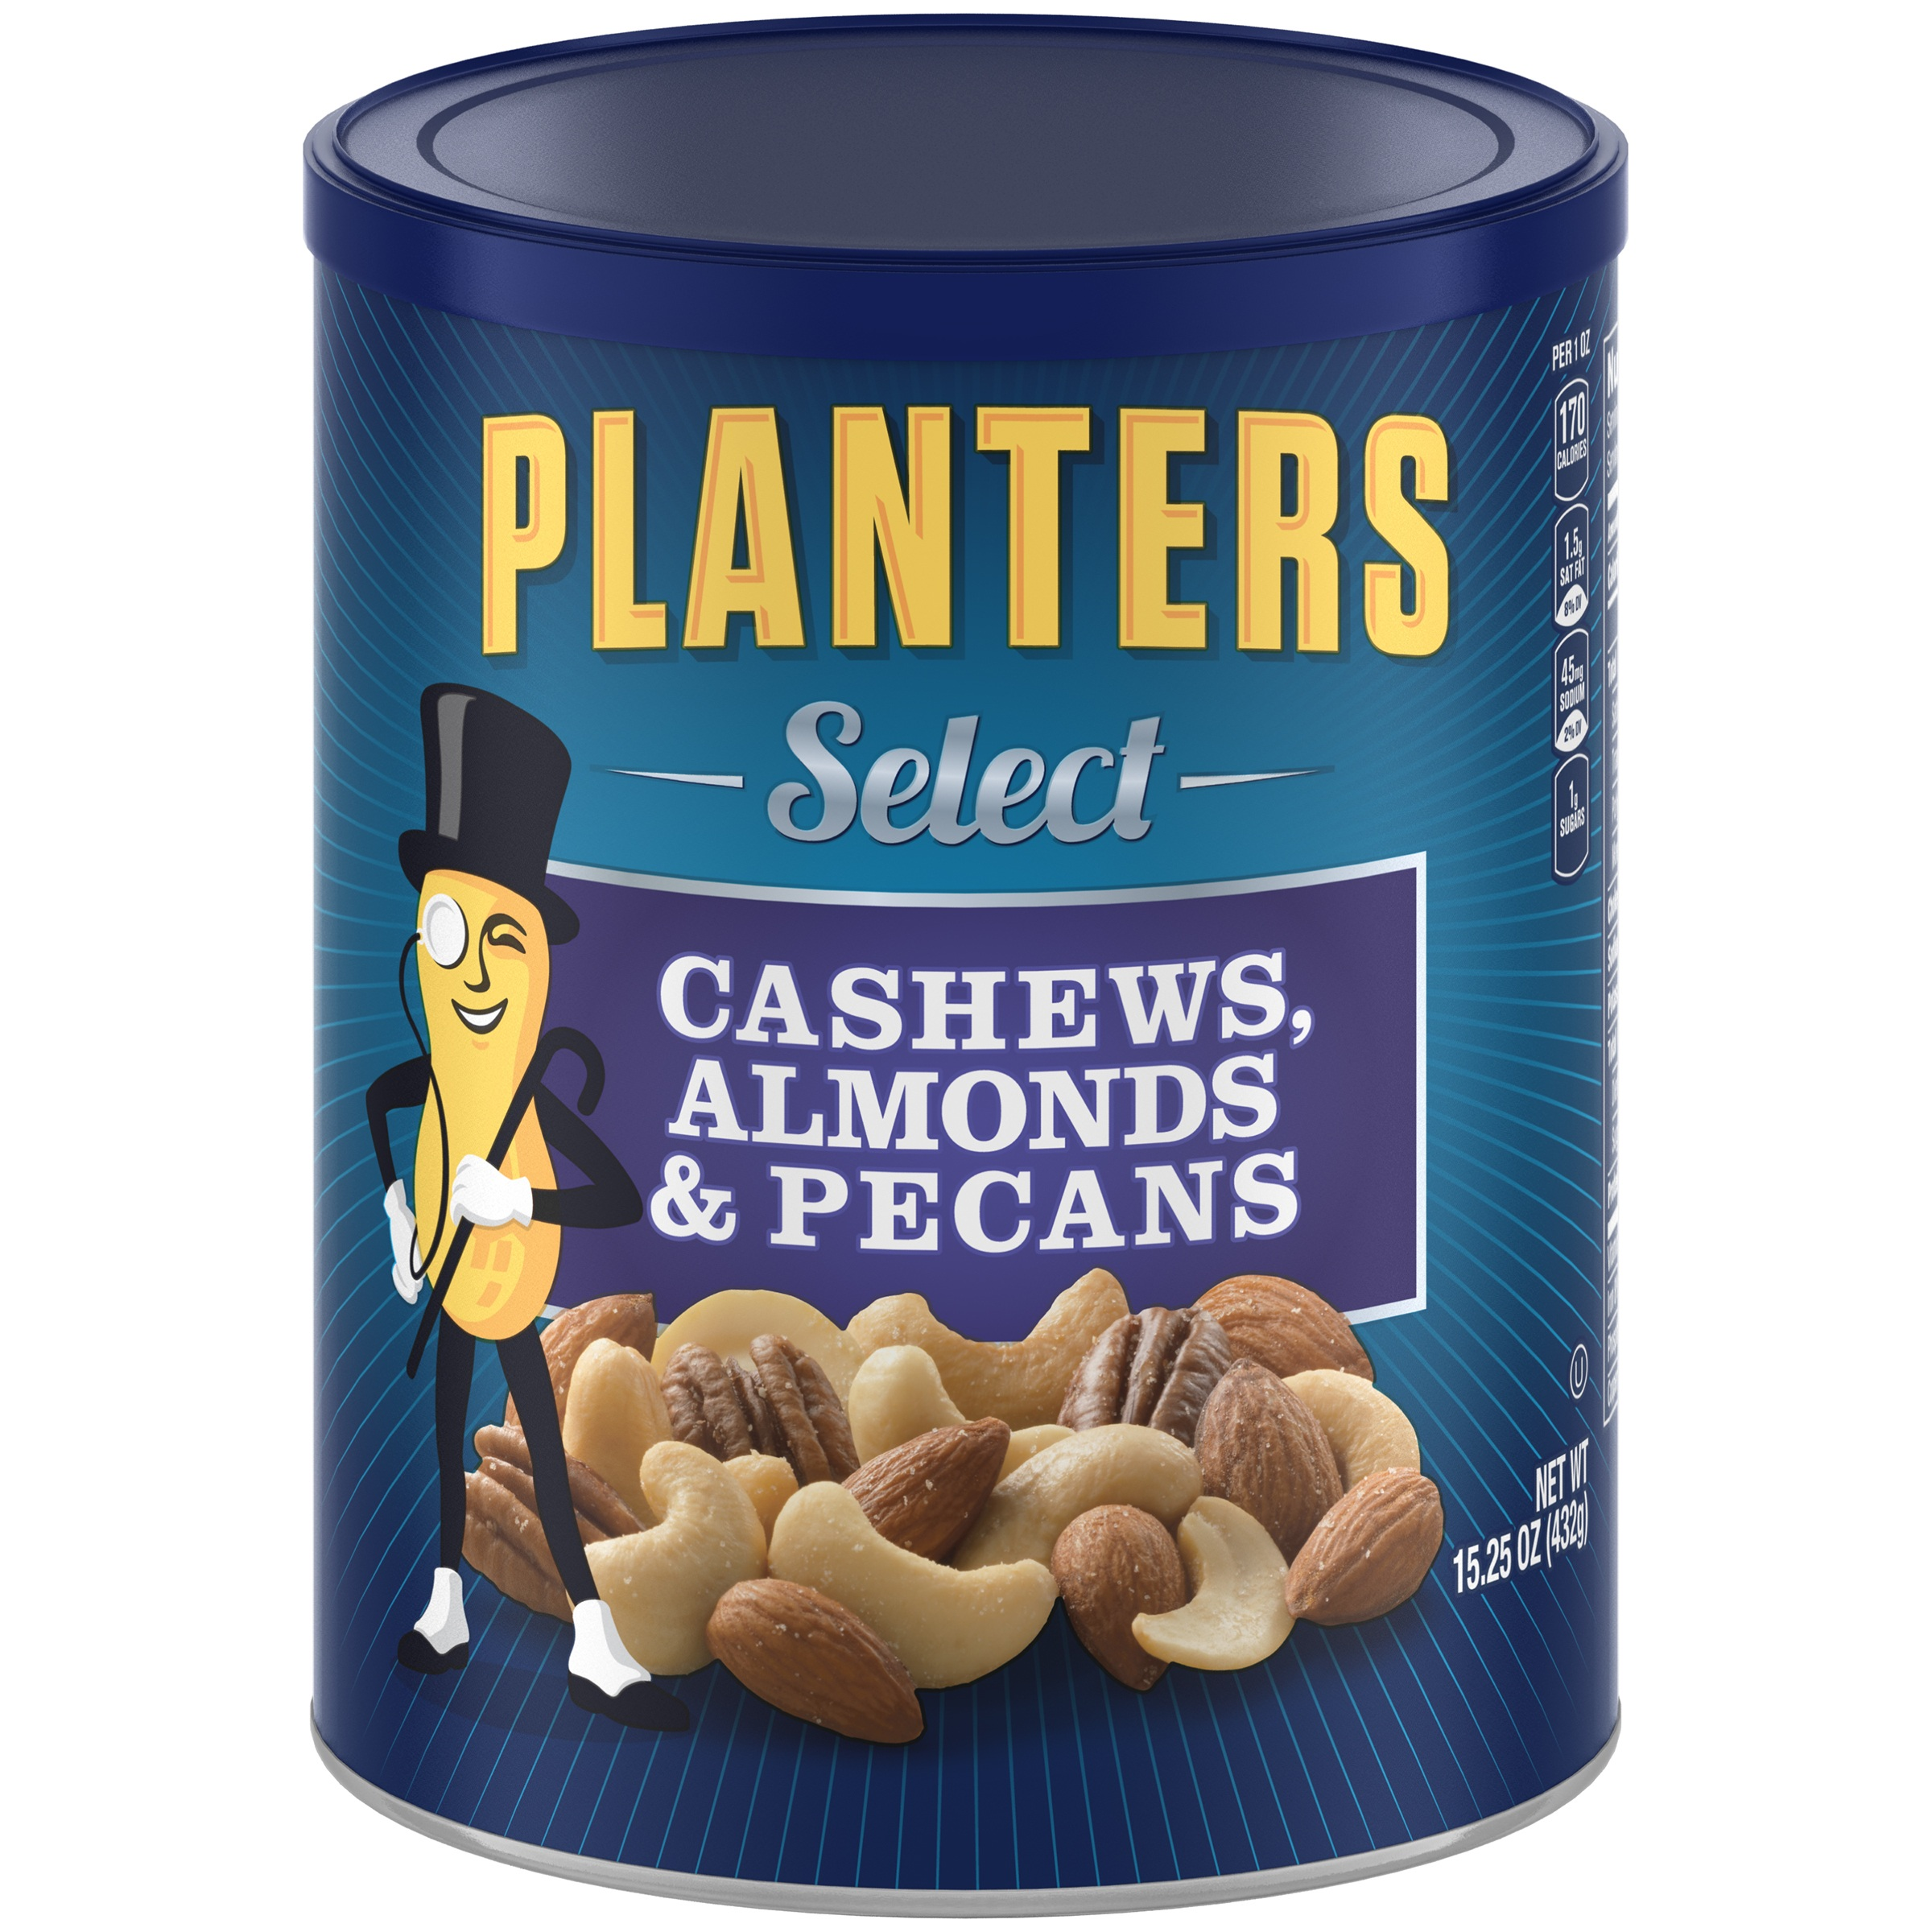 Planters Select Almonds, Cashews, and Pecans, 15.25 oz Canister